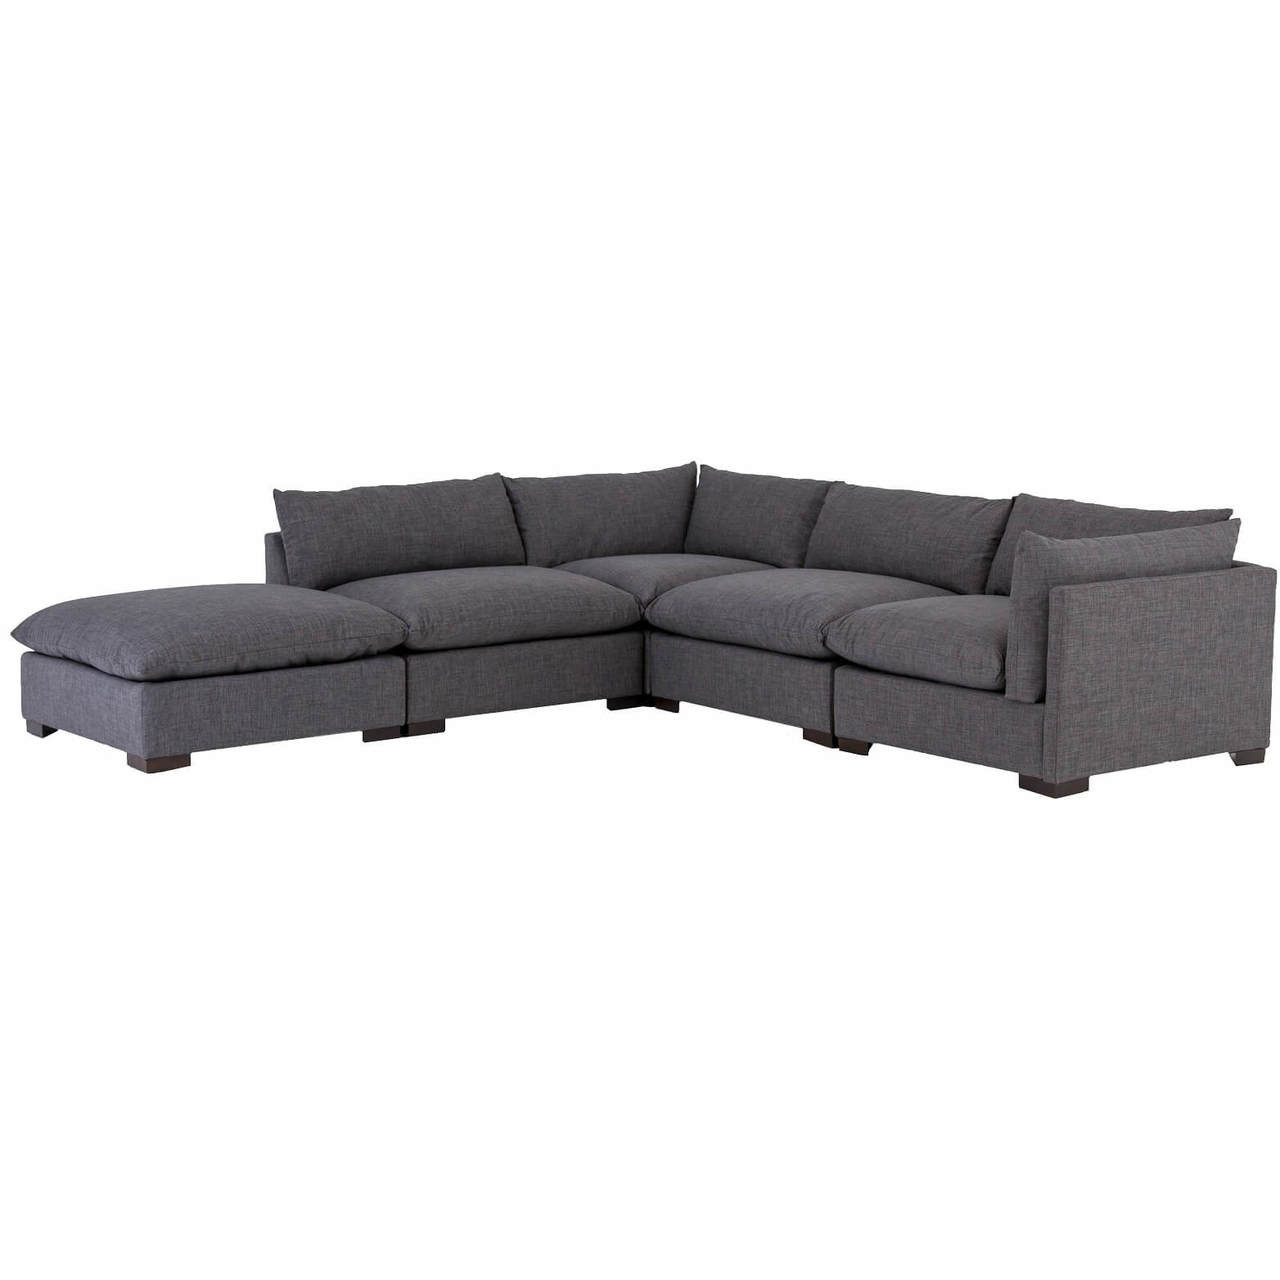 Enjoyable Westworld Modern Gray 5 Piece Modular Lounge Sectional Sofa Caraccident5 Cool Chair Designs And Ideas Caraccident5Info